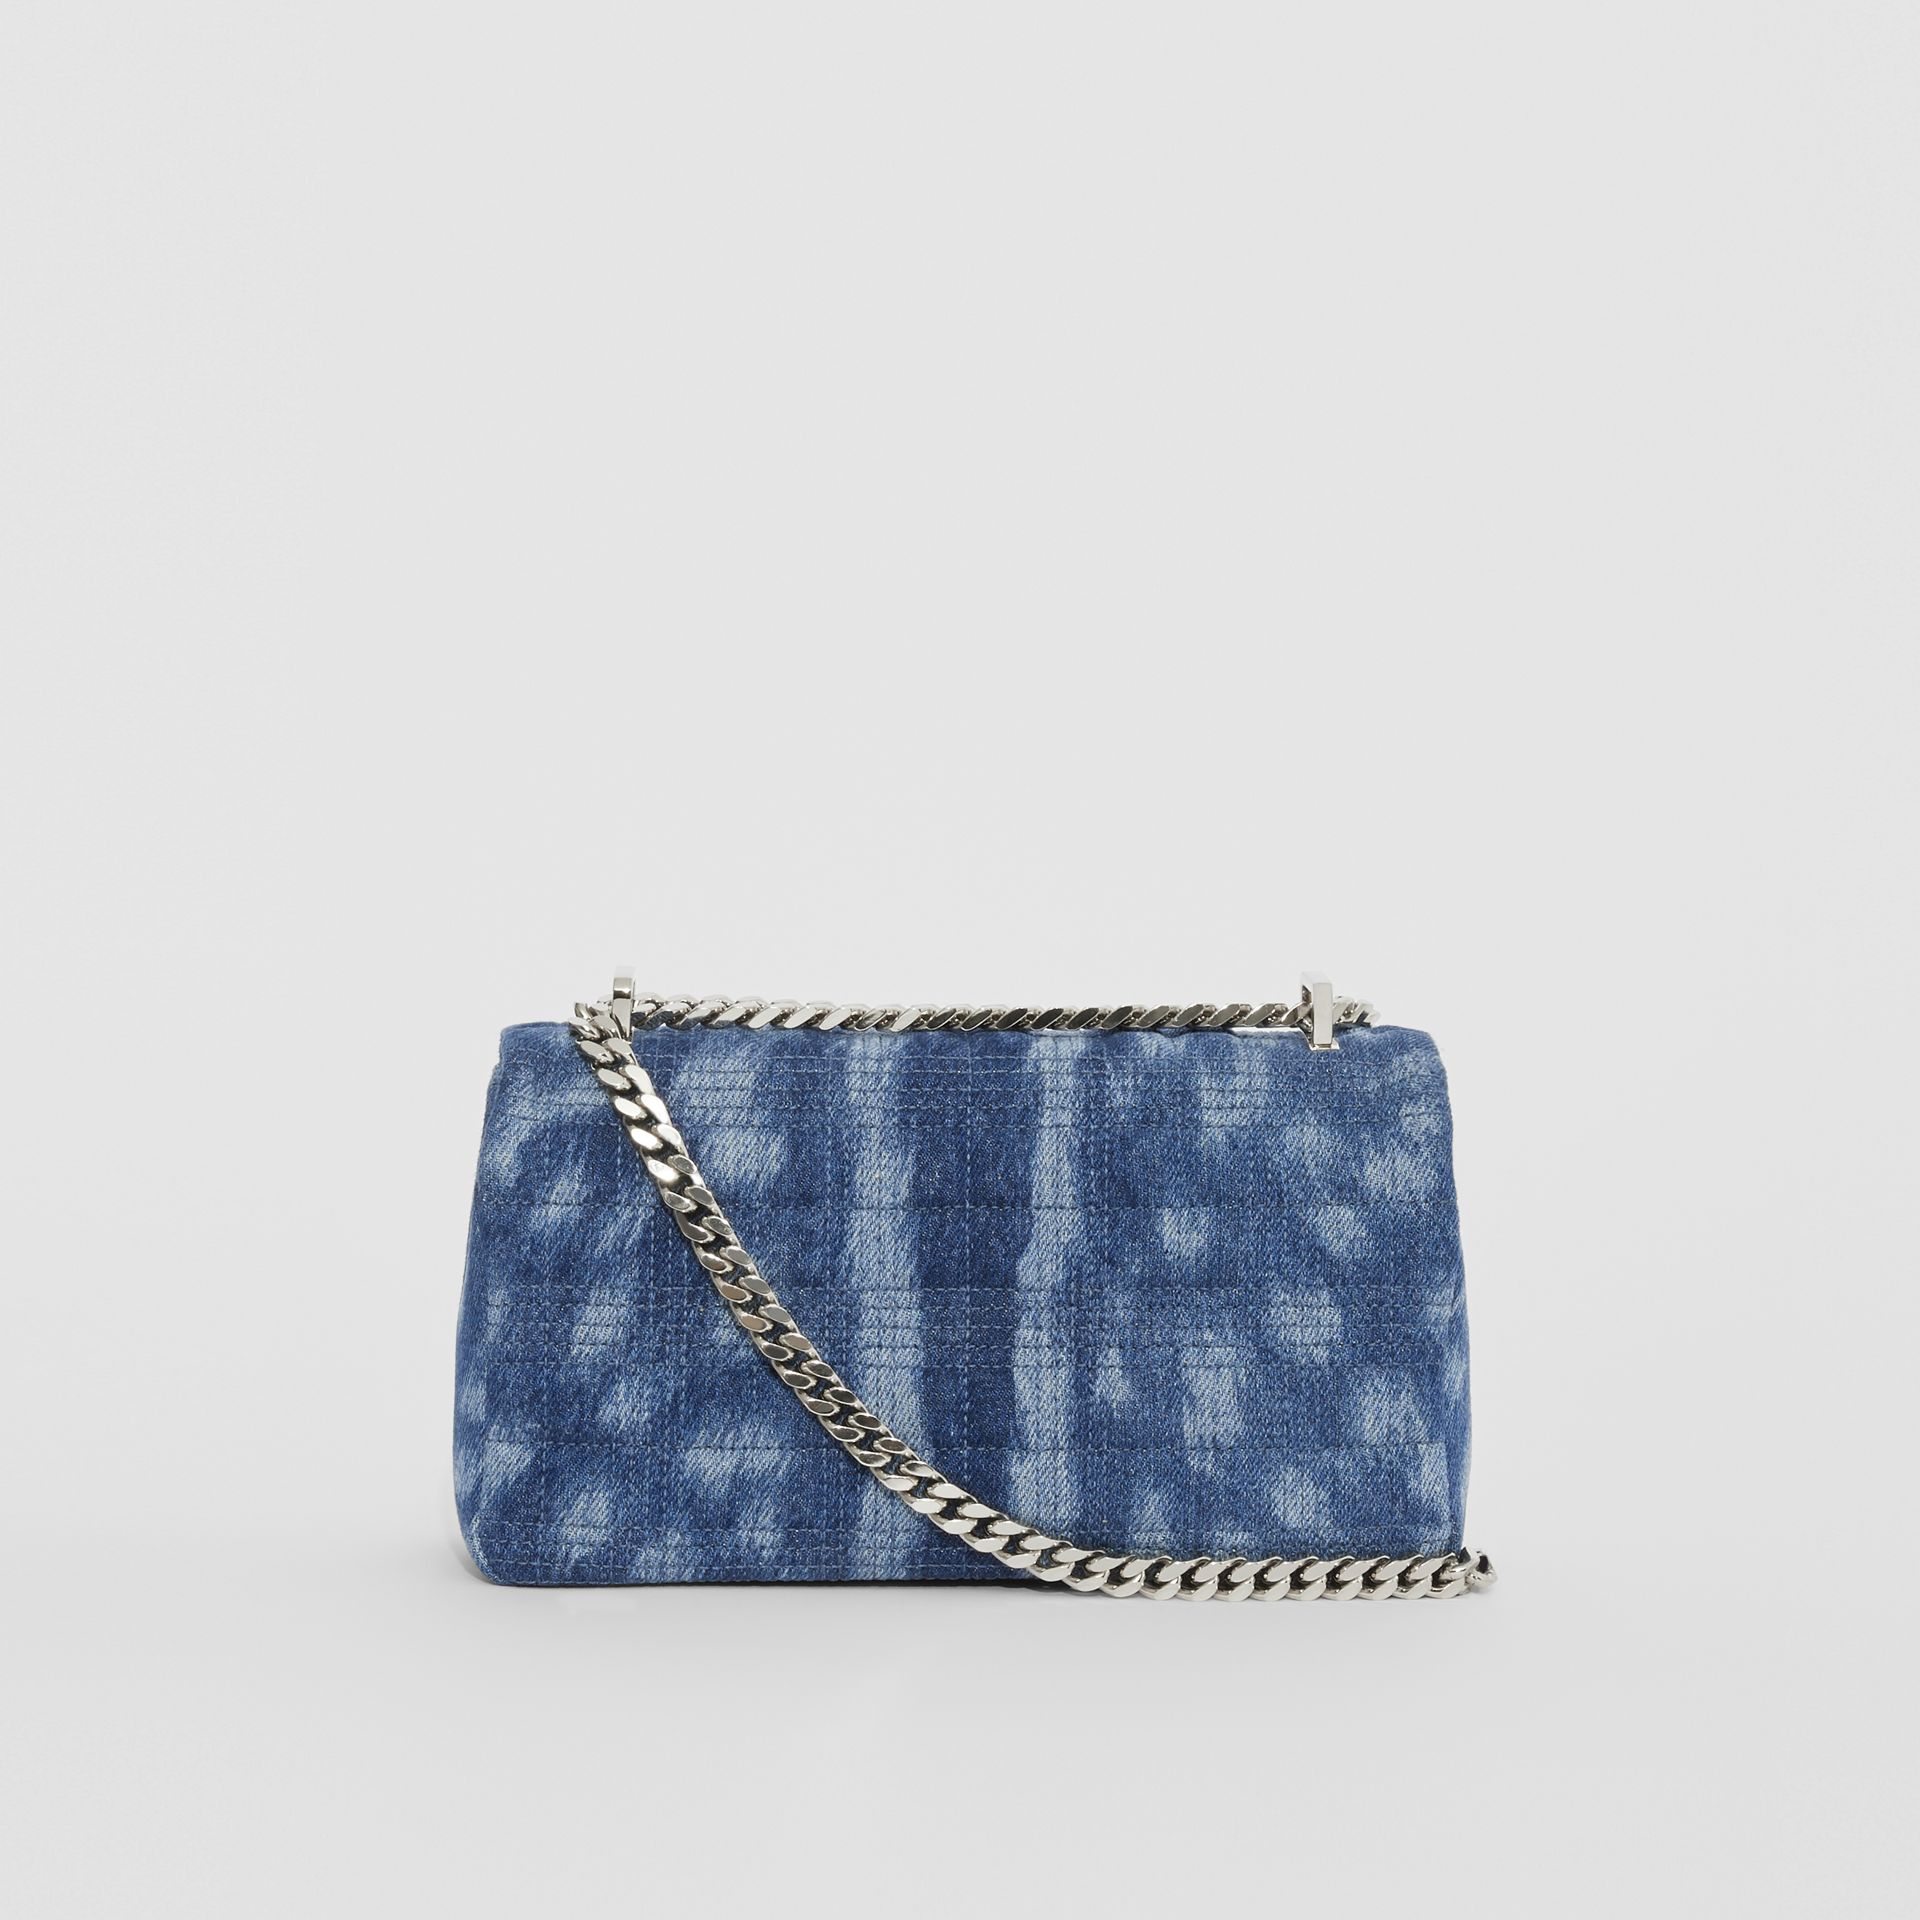 Petit sac Lola en denim matelassé (Bleu) | Burberry - photo de la galerie 7